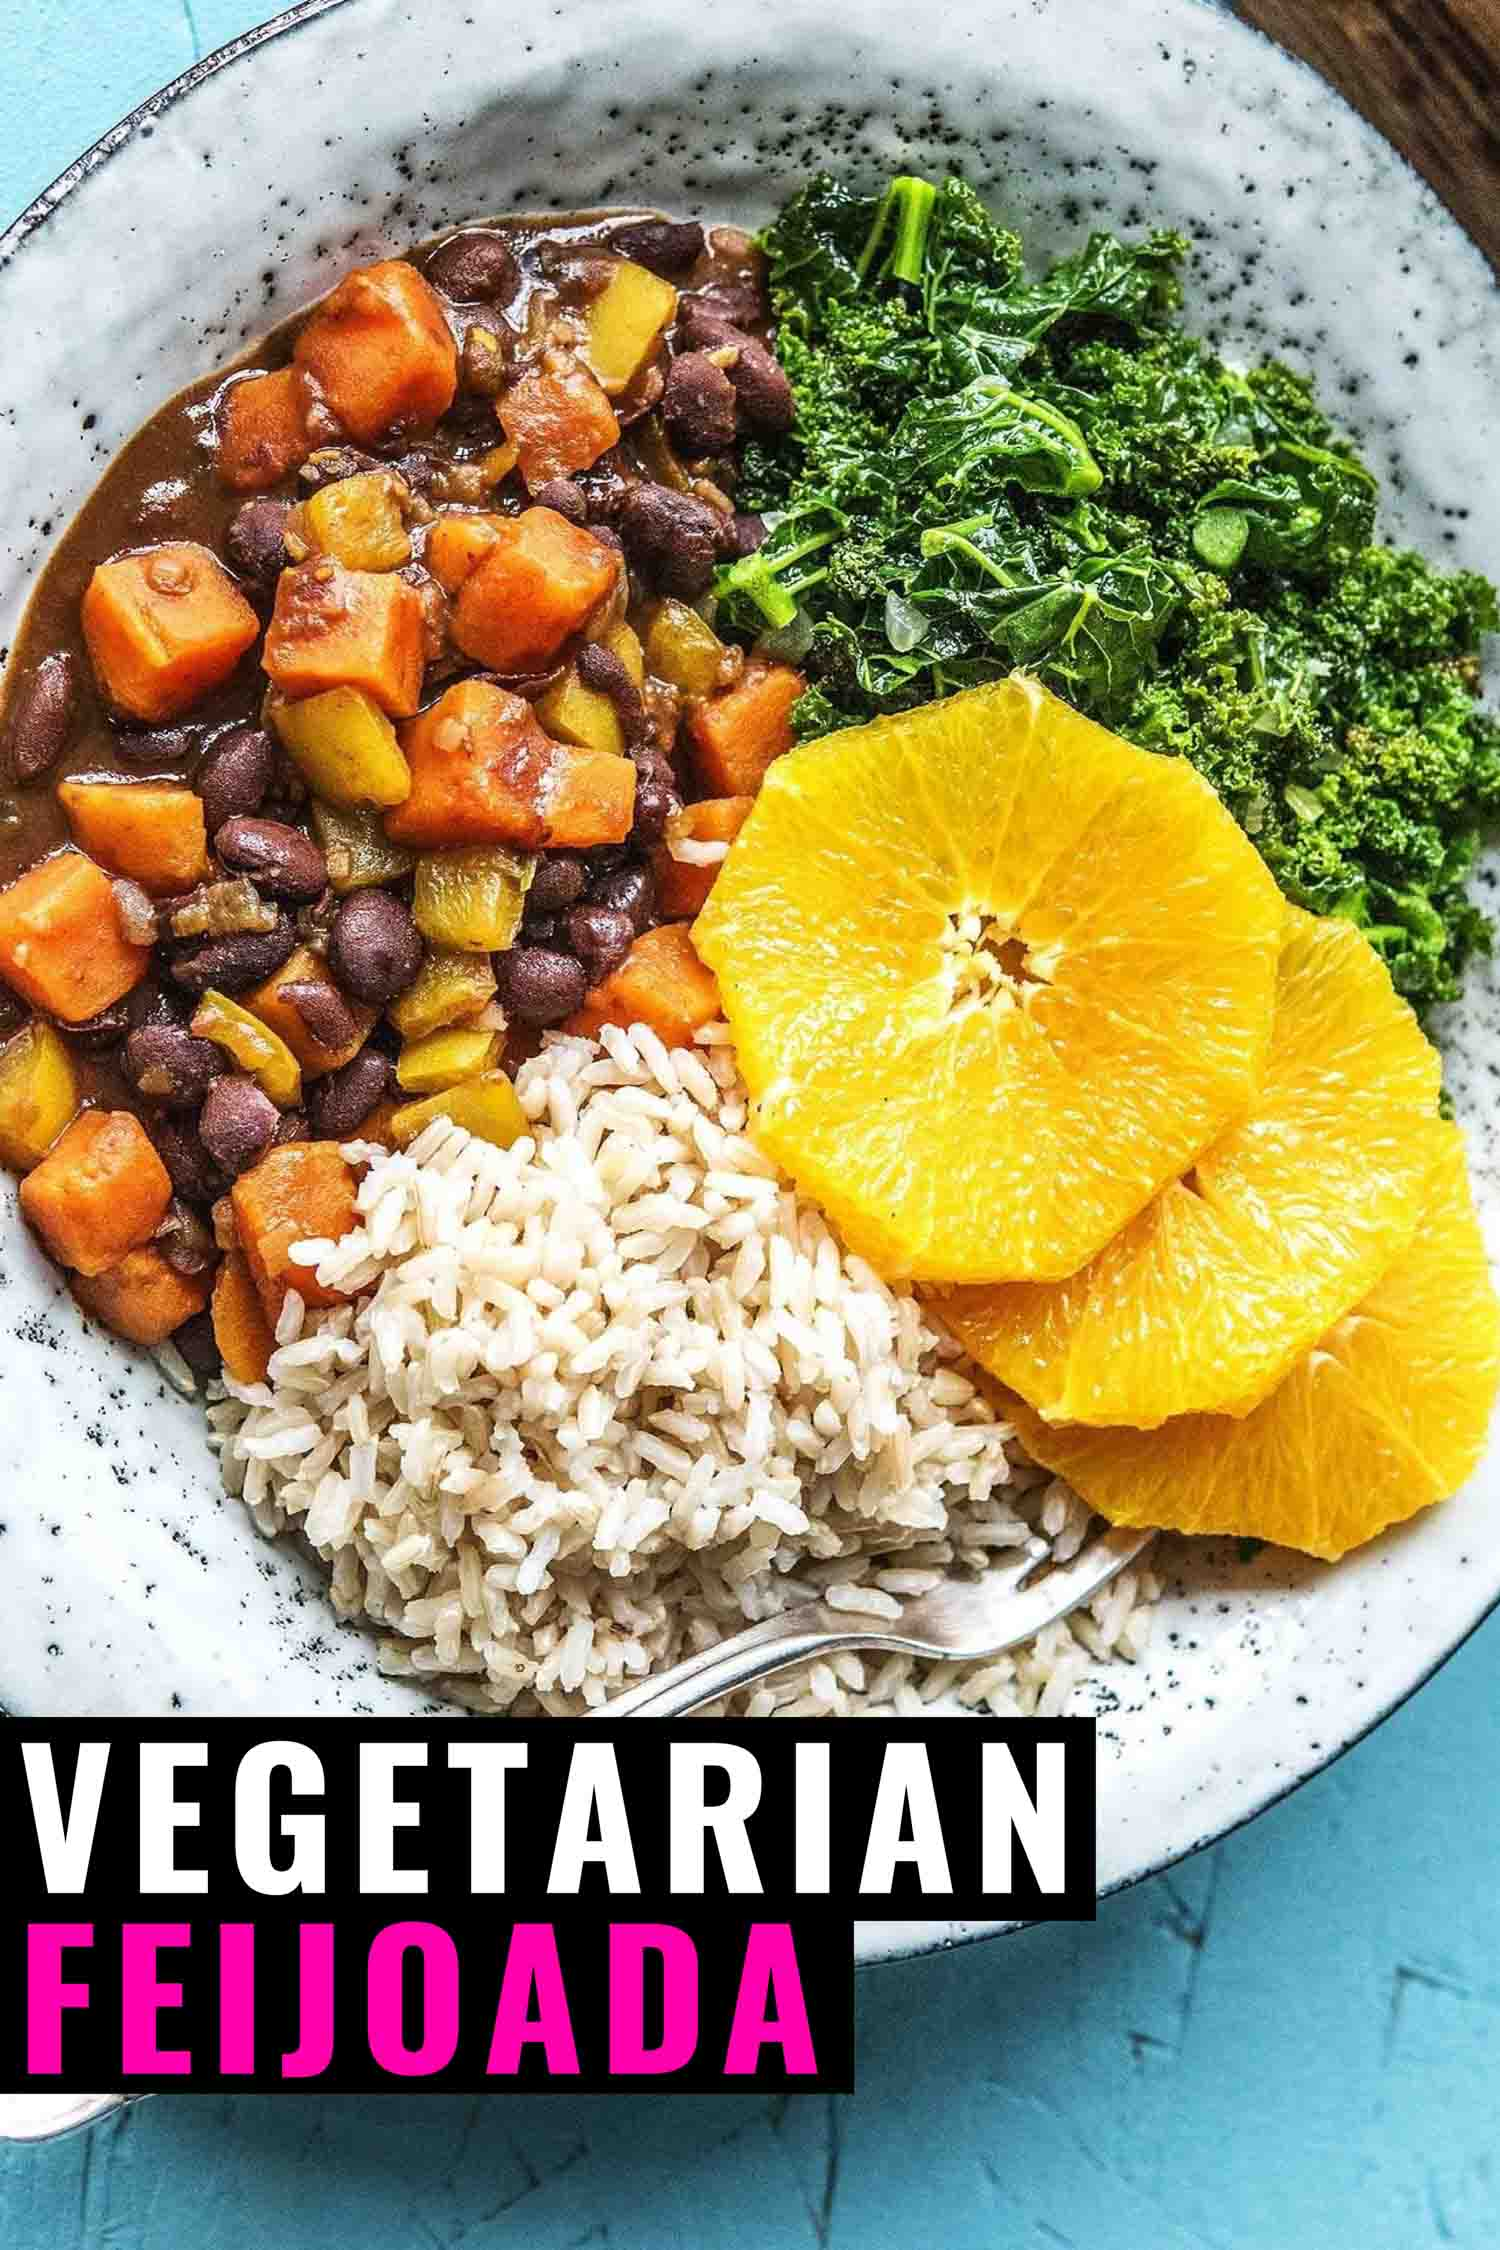 Vegetarian feijoada with slides of orange and kale on a white plate and black background.